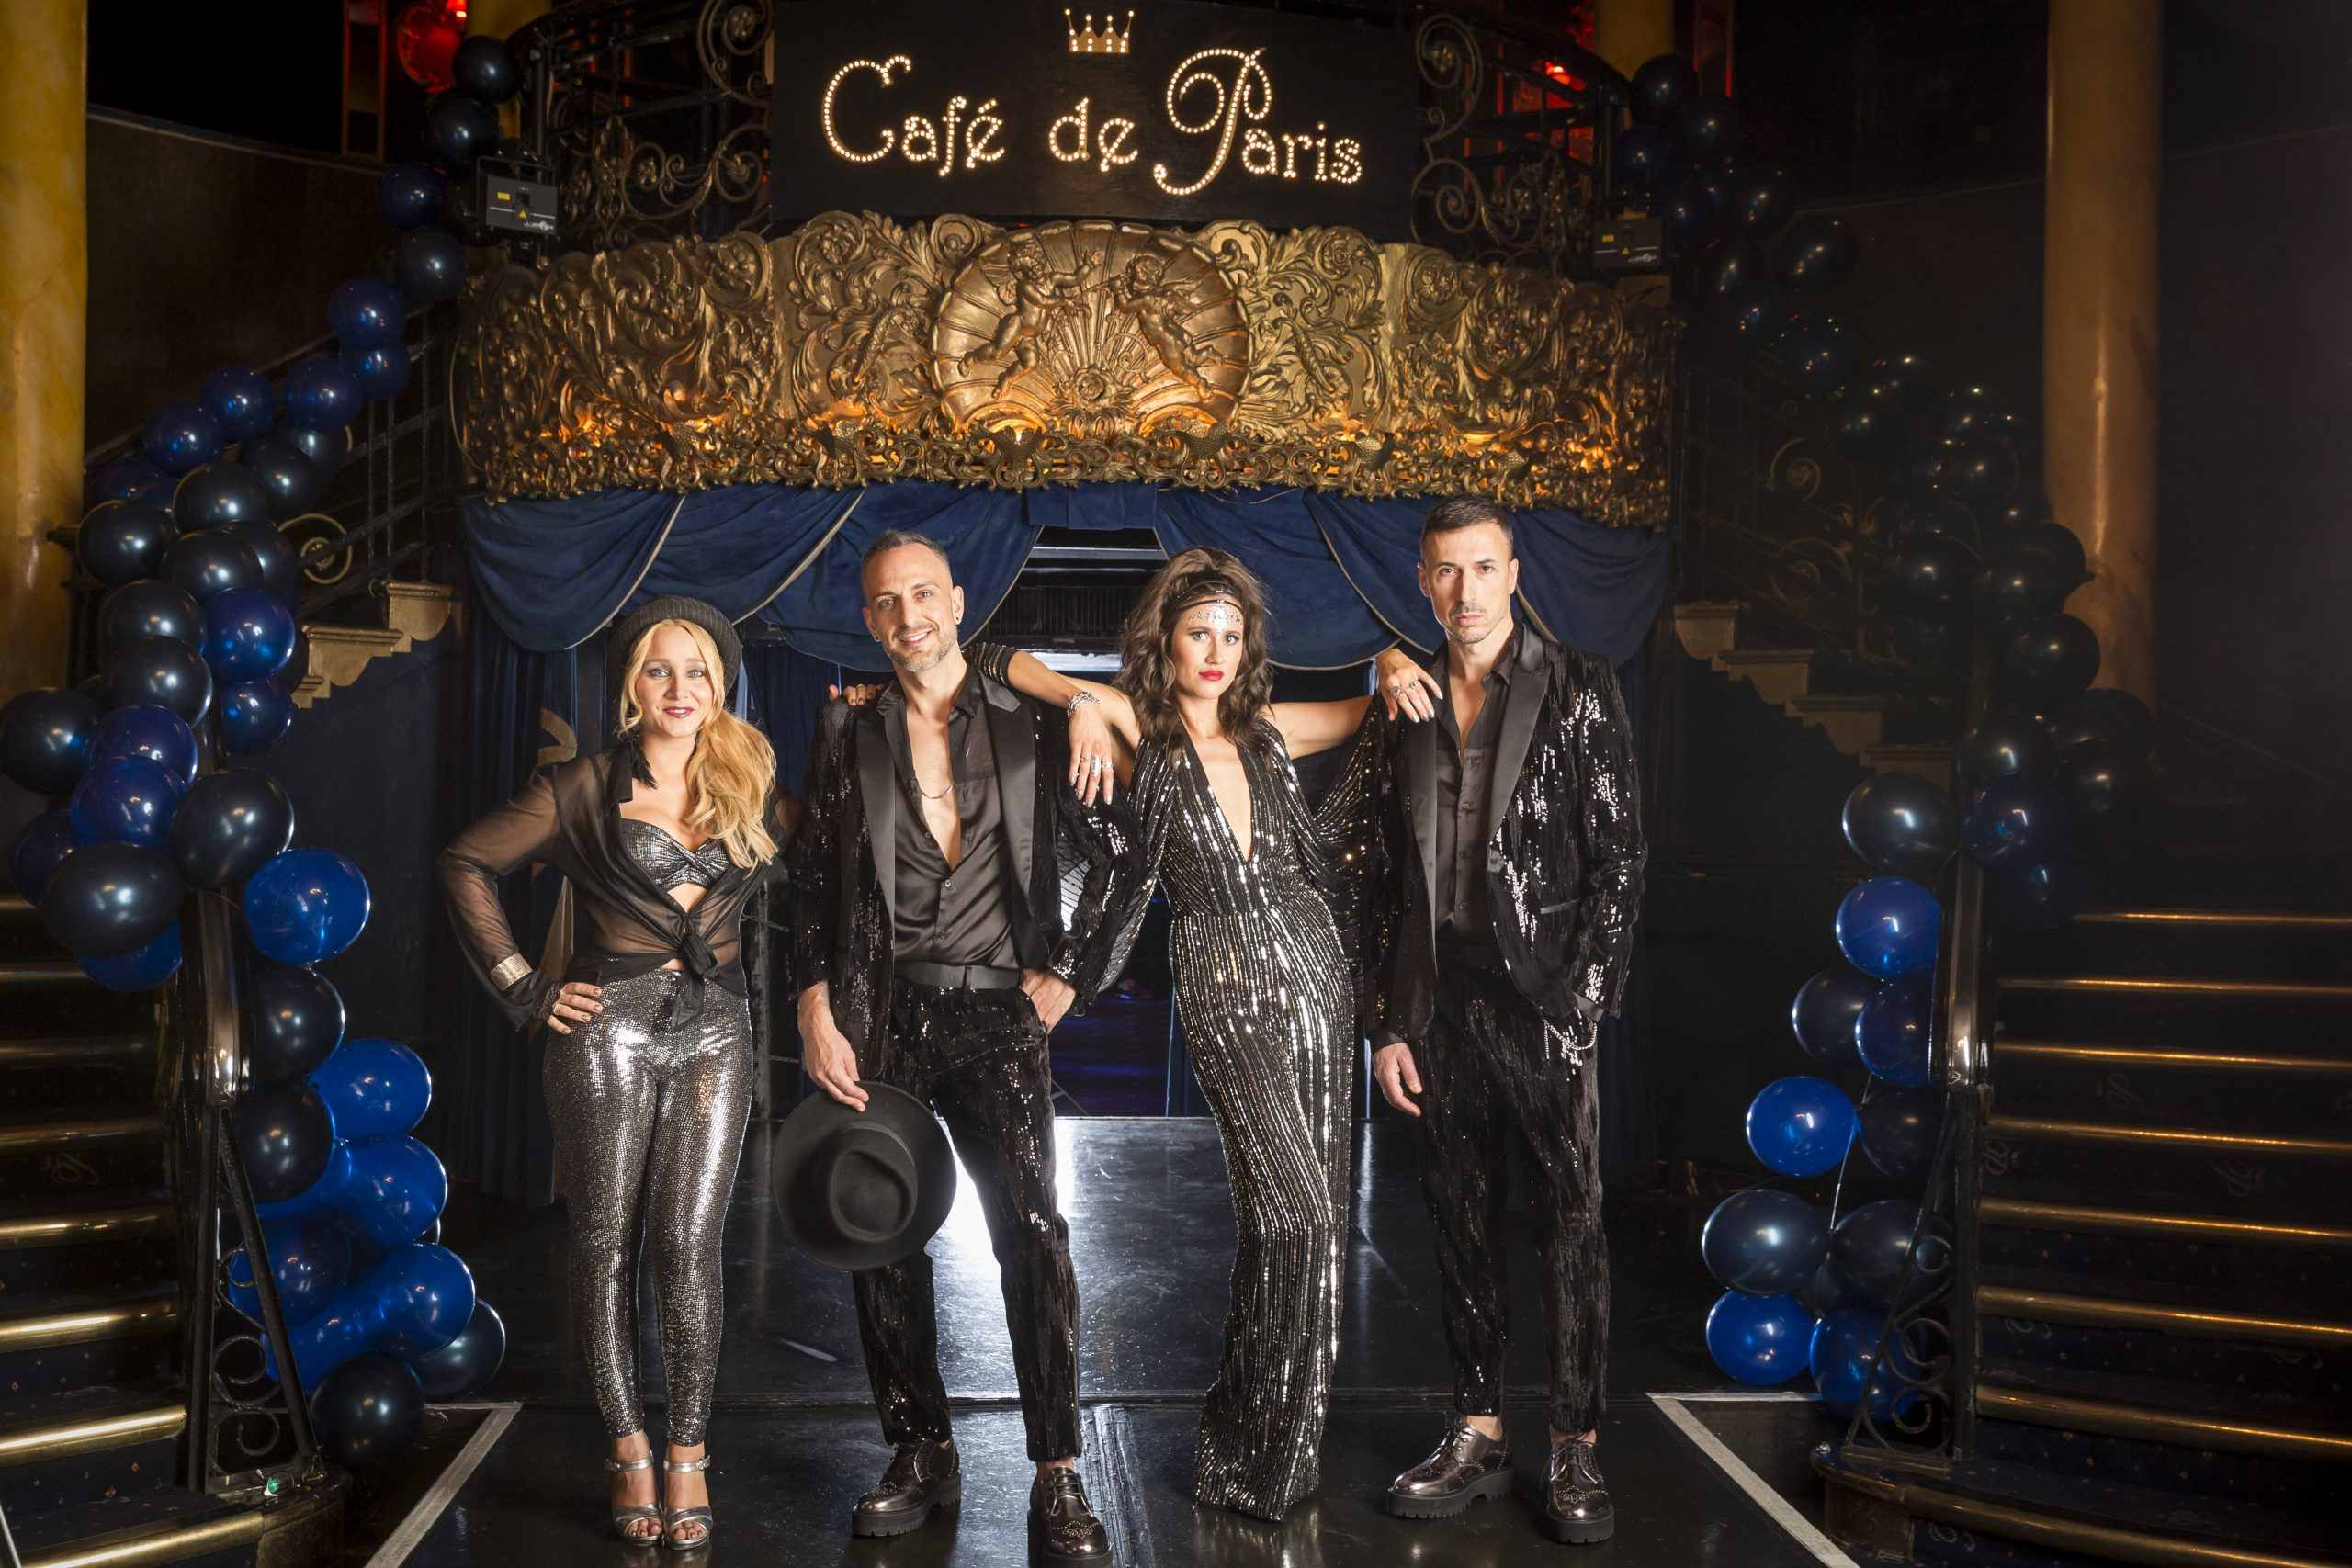 Four piece band, two male and two female in dark sequin show costumes standing on the stage of cafe de paris